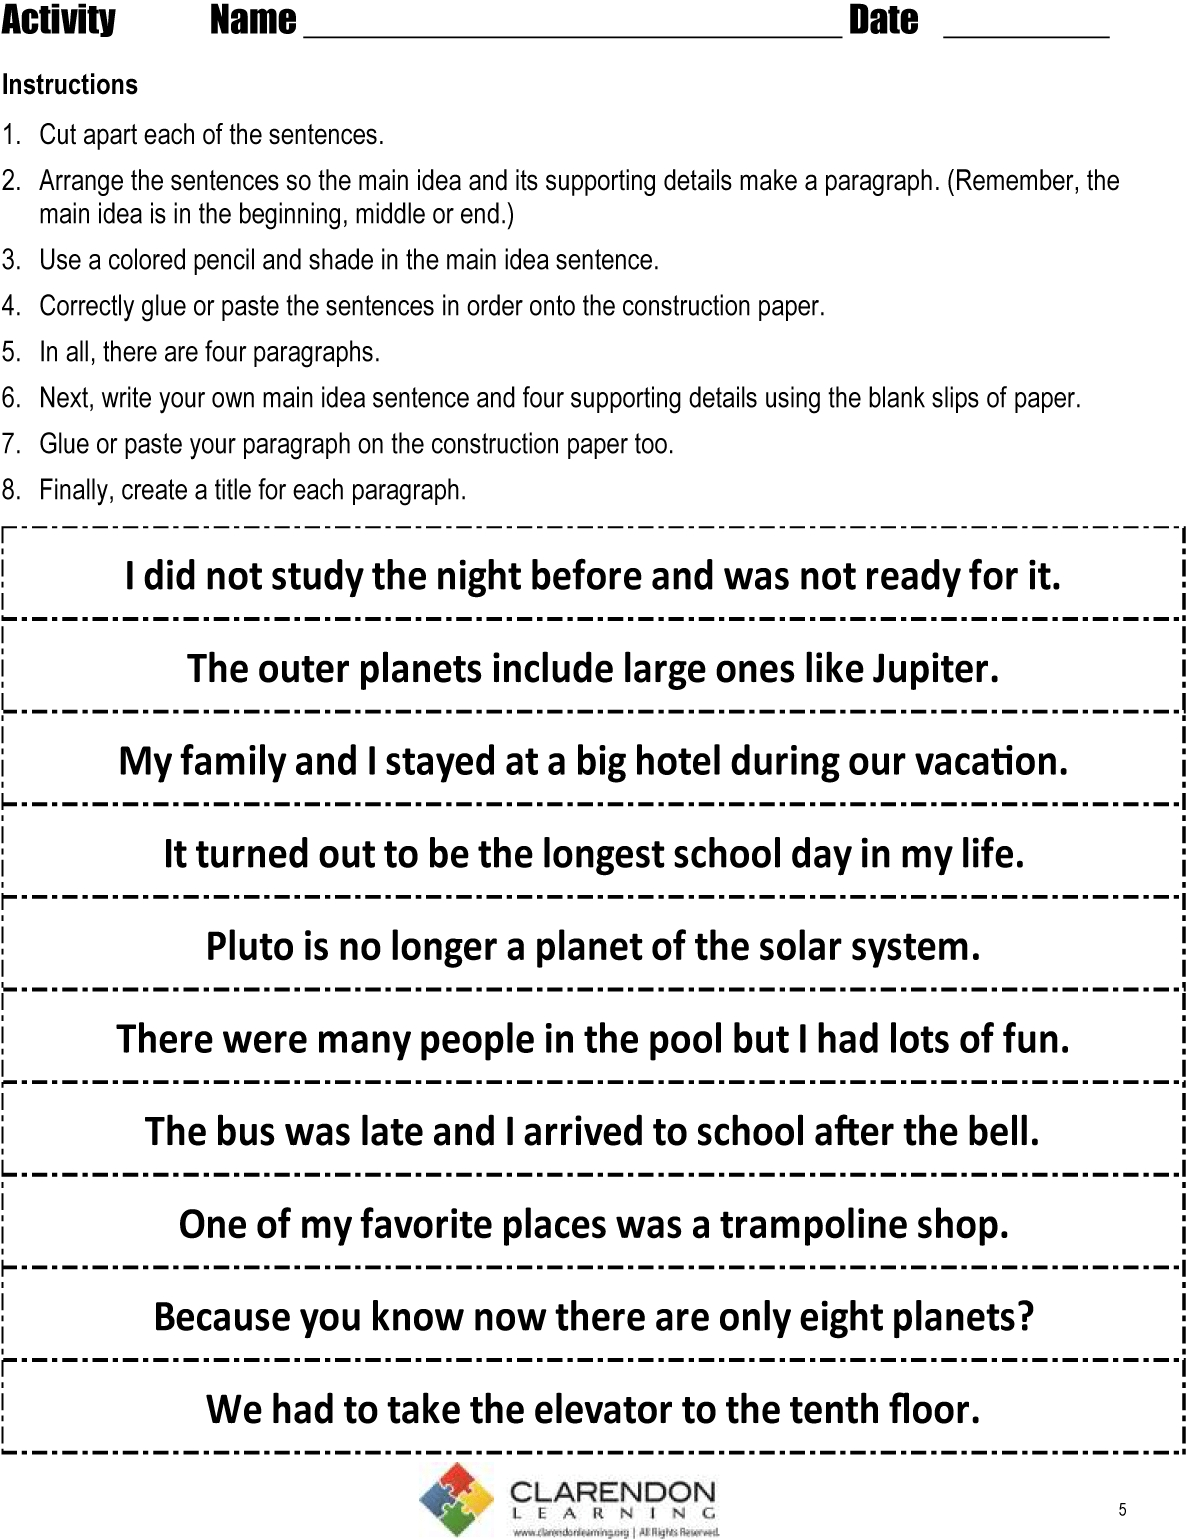 10 Stunning Main Idea And Supporting Details Worksheet main idea grades 3 4 lesson plan clarendon learning 5 2021